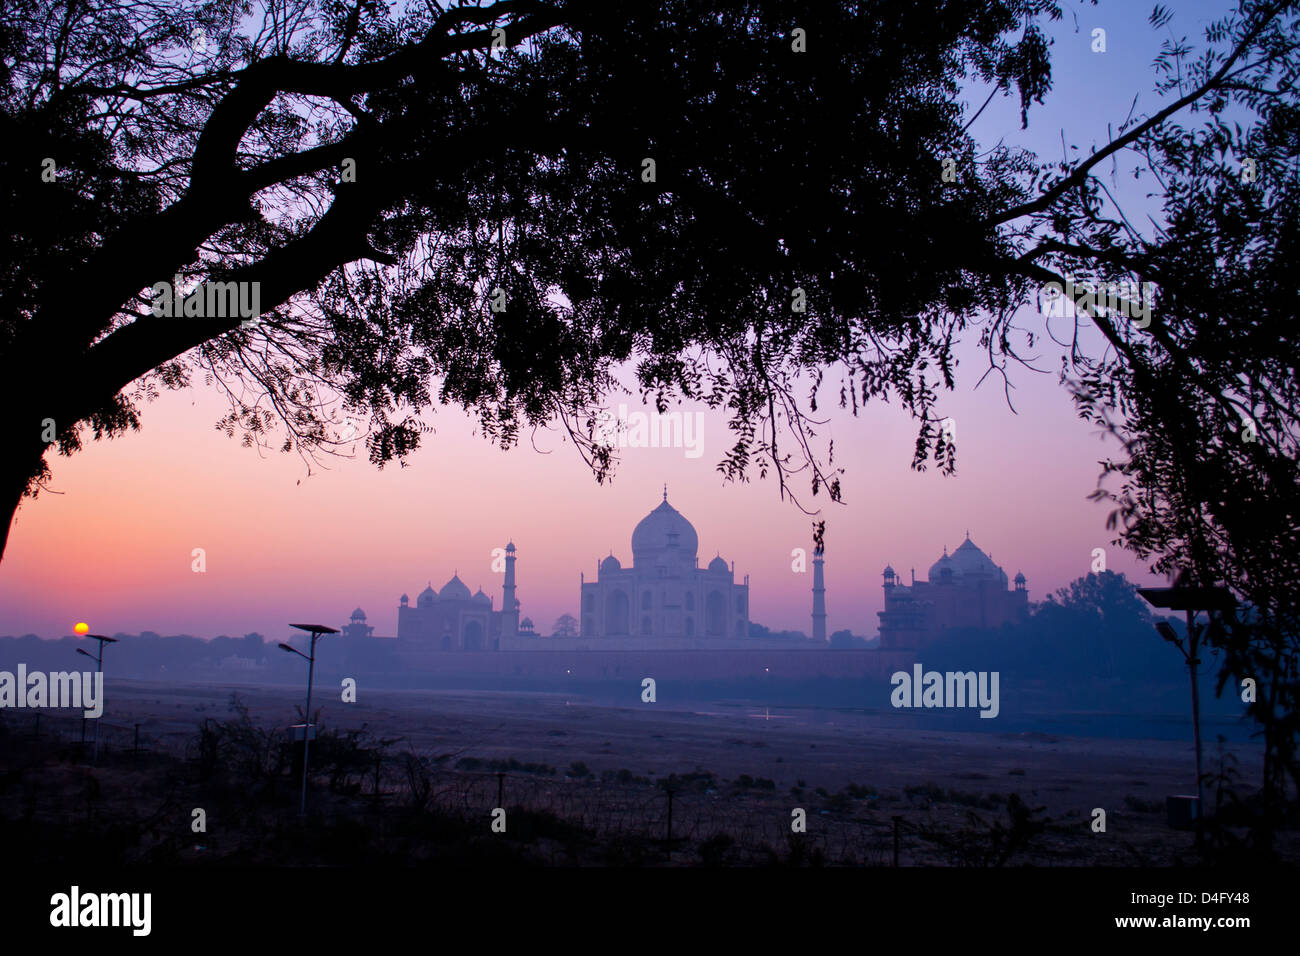 The Taj Mahal at sunrise, photographed from across the dried up river Yamuna, in Mehtab Bagh park - Stock Image